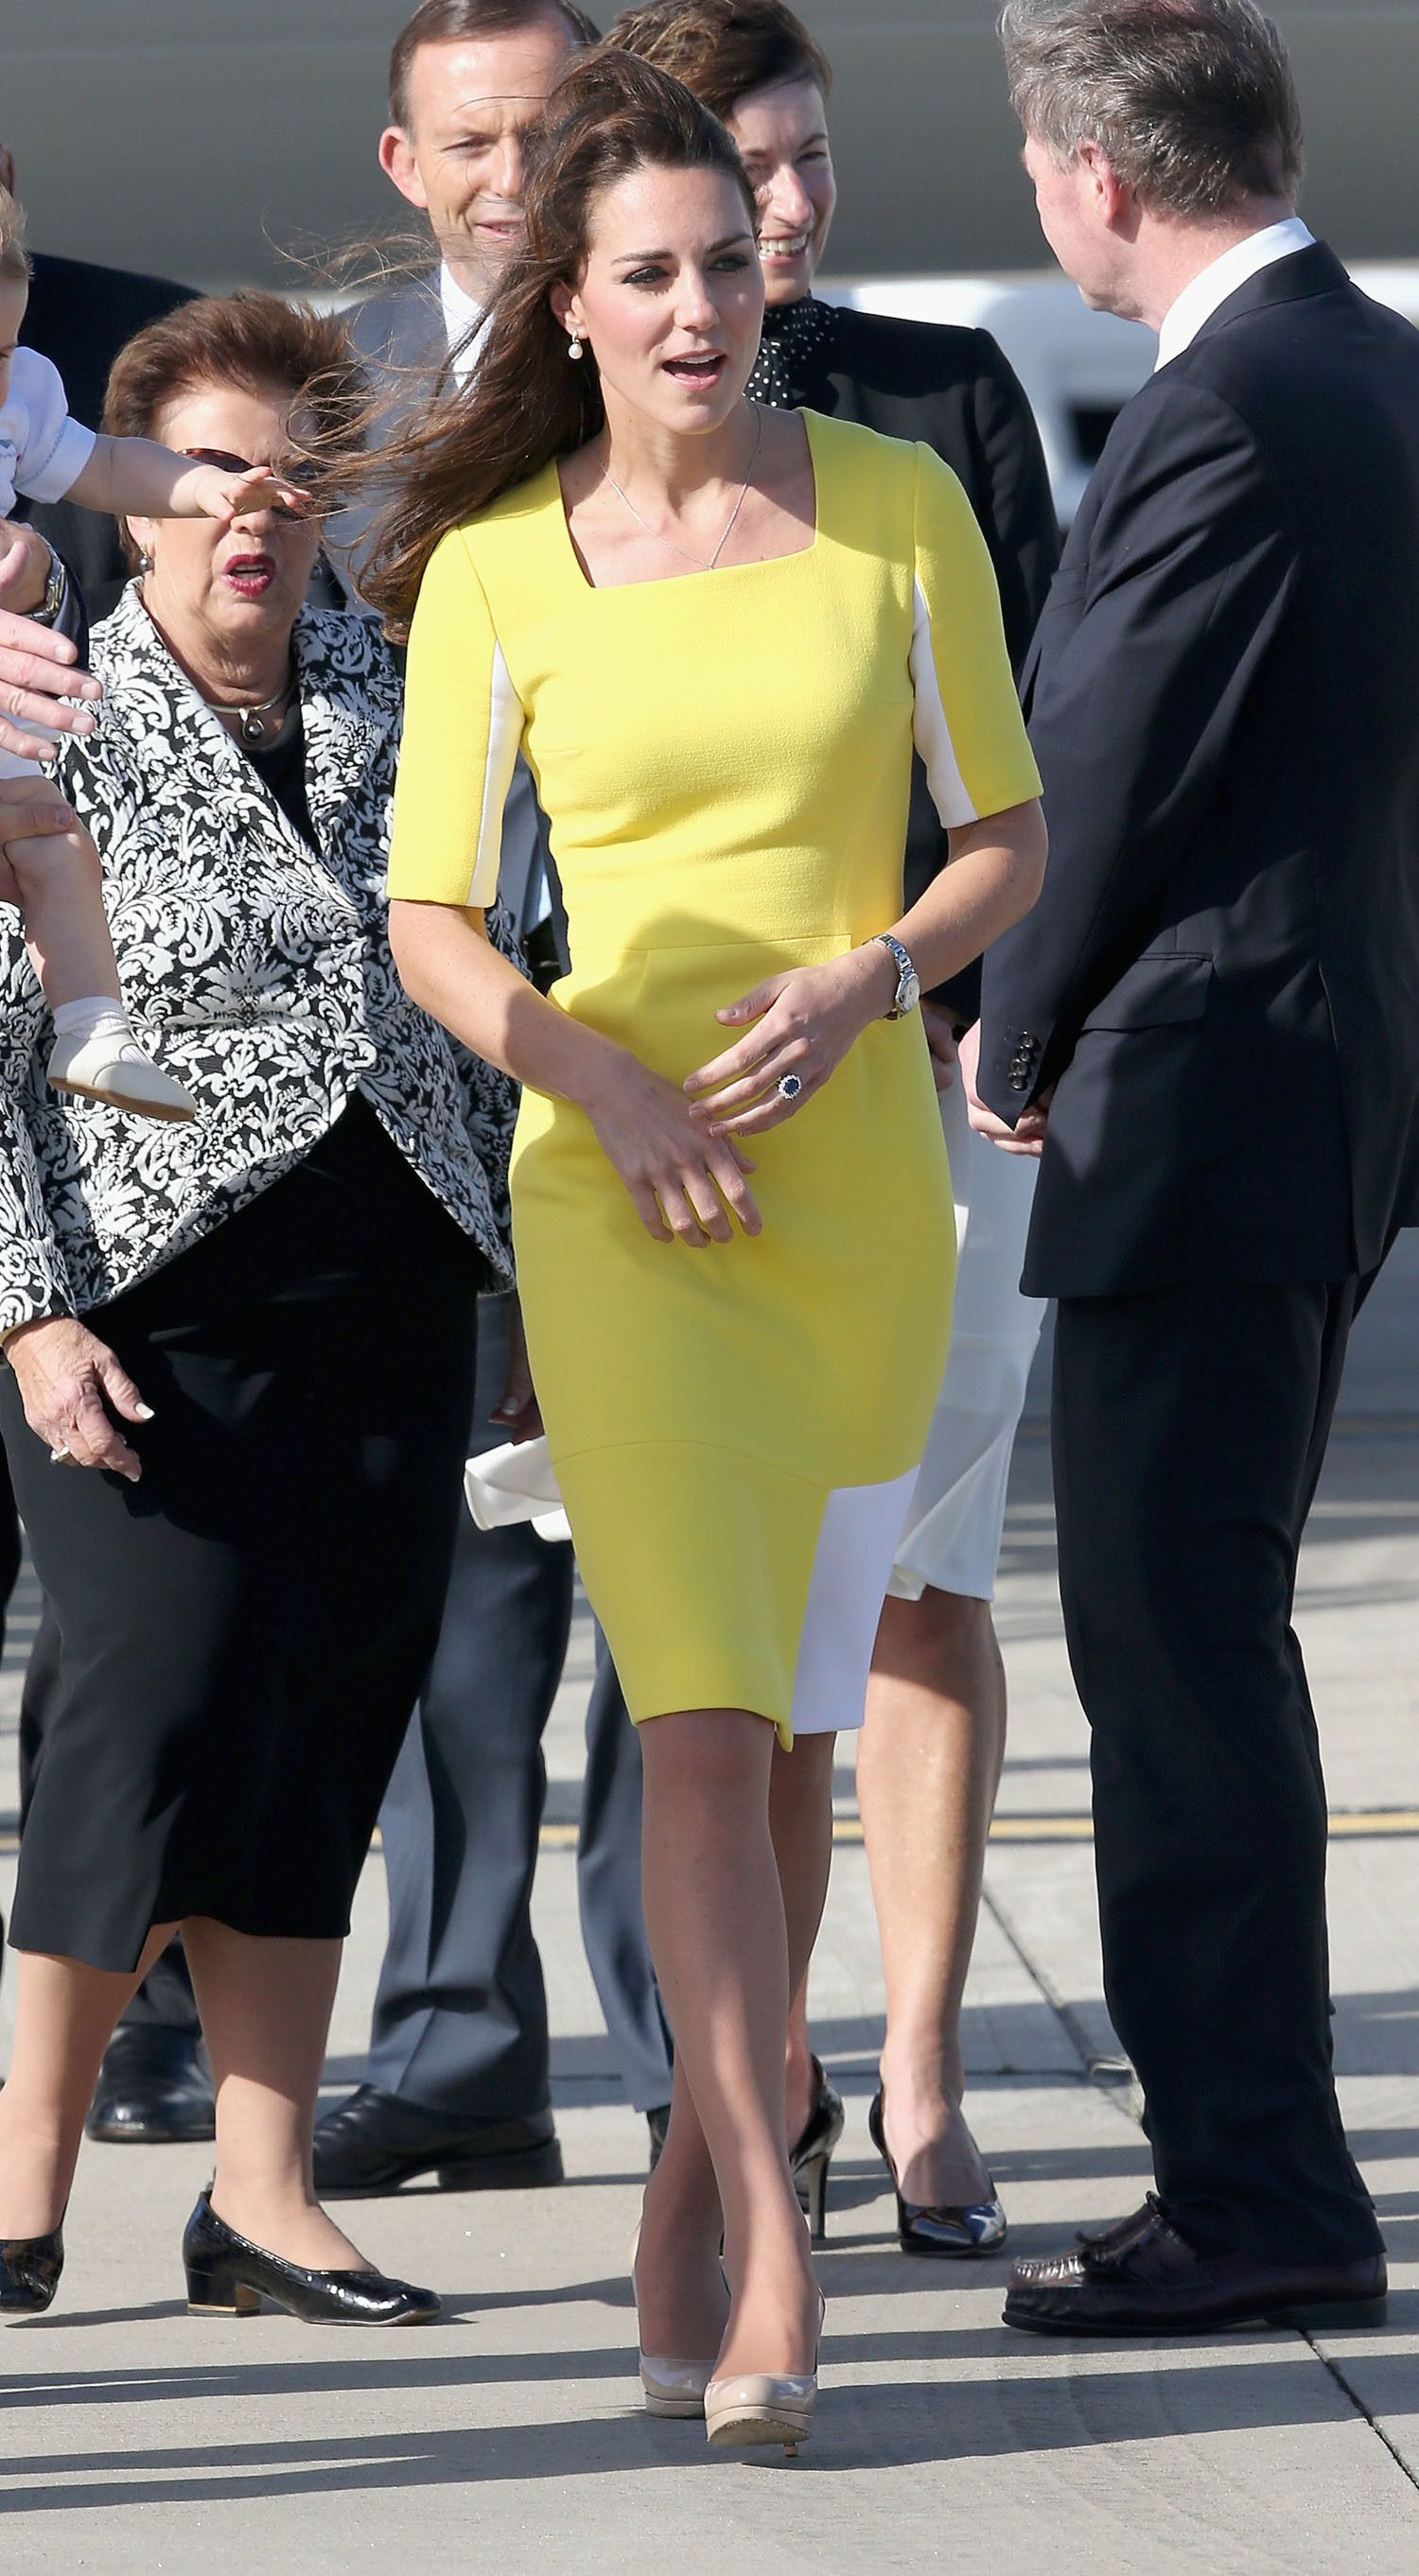 52 Reasons Kate Middleton Is A Style Icon With Images Kate Middleton Outfits Princess Kate Middleton Kate Middleton Style